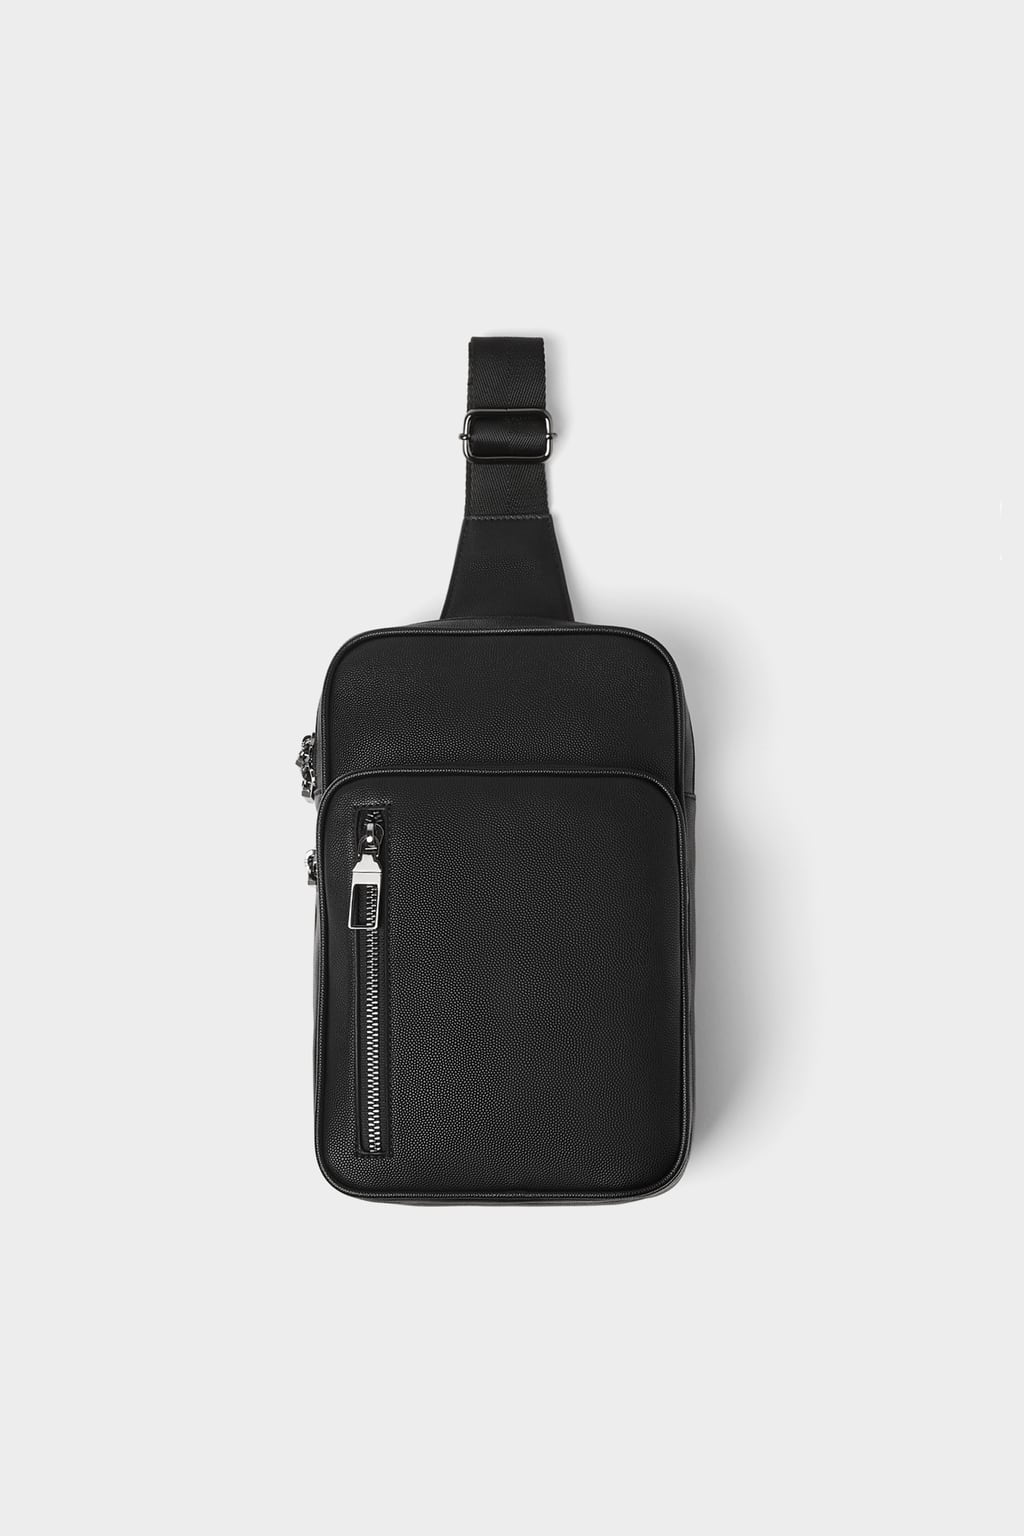 Black Crossbody Bag With Zips Crossbody And Bum Bags Bags And Backpacks Man by Zara